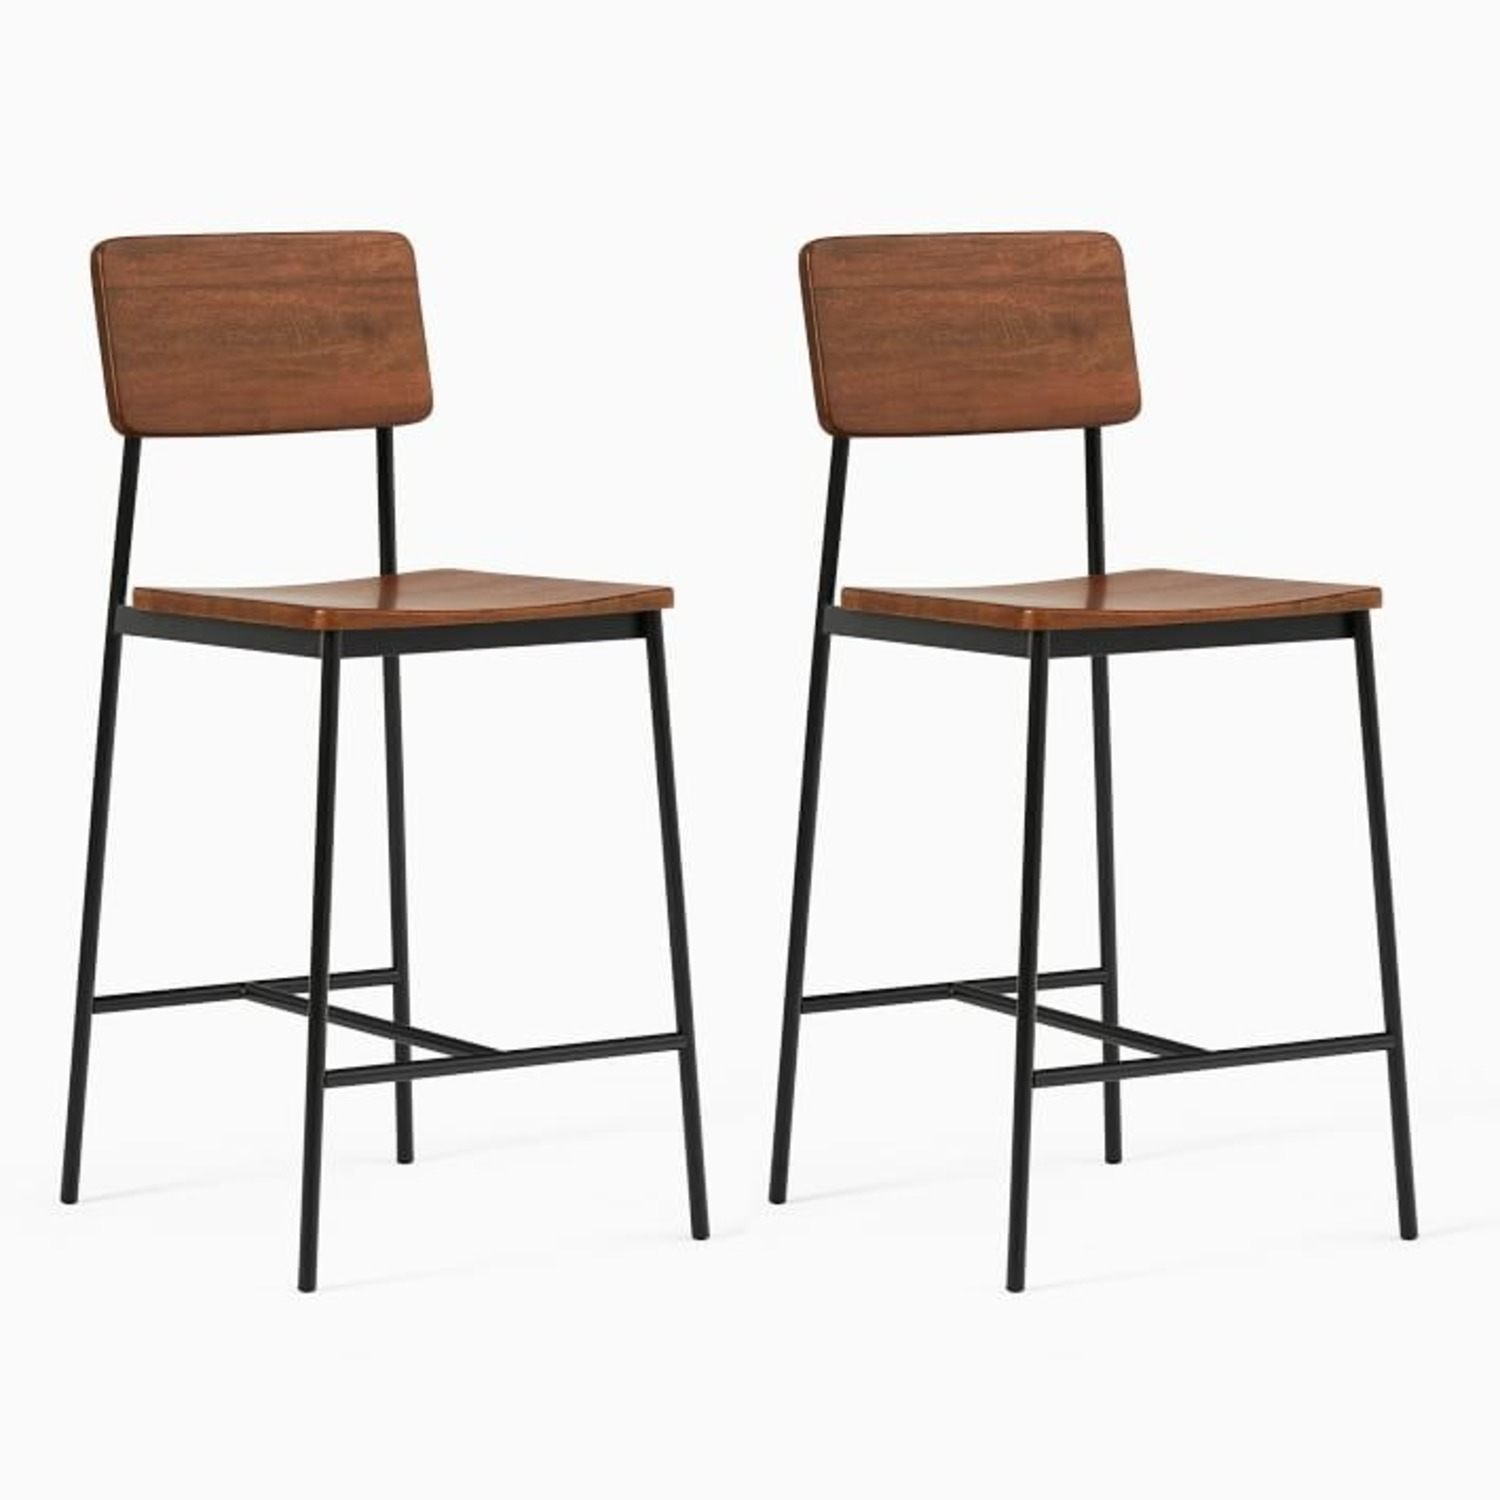 West Elm Augusta Rustic Counter Stool - image-3